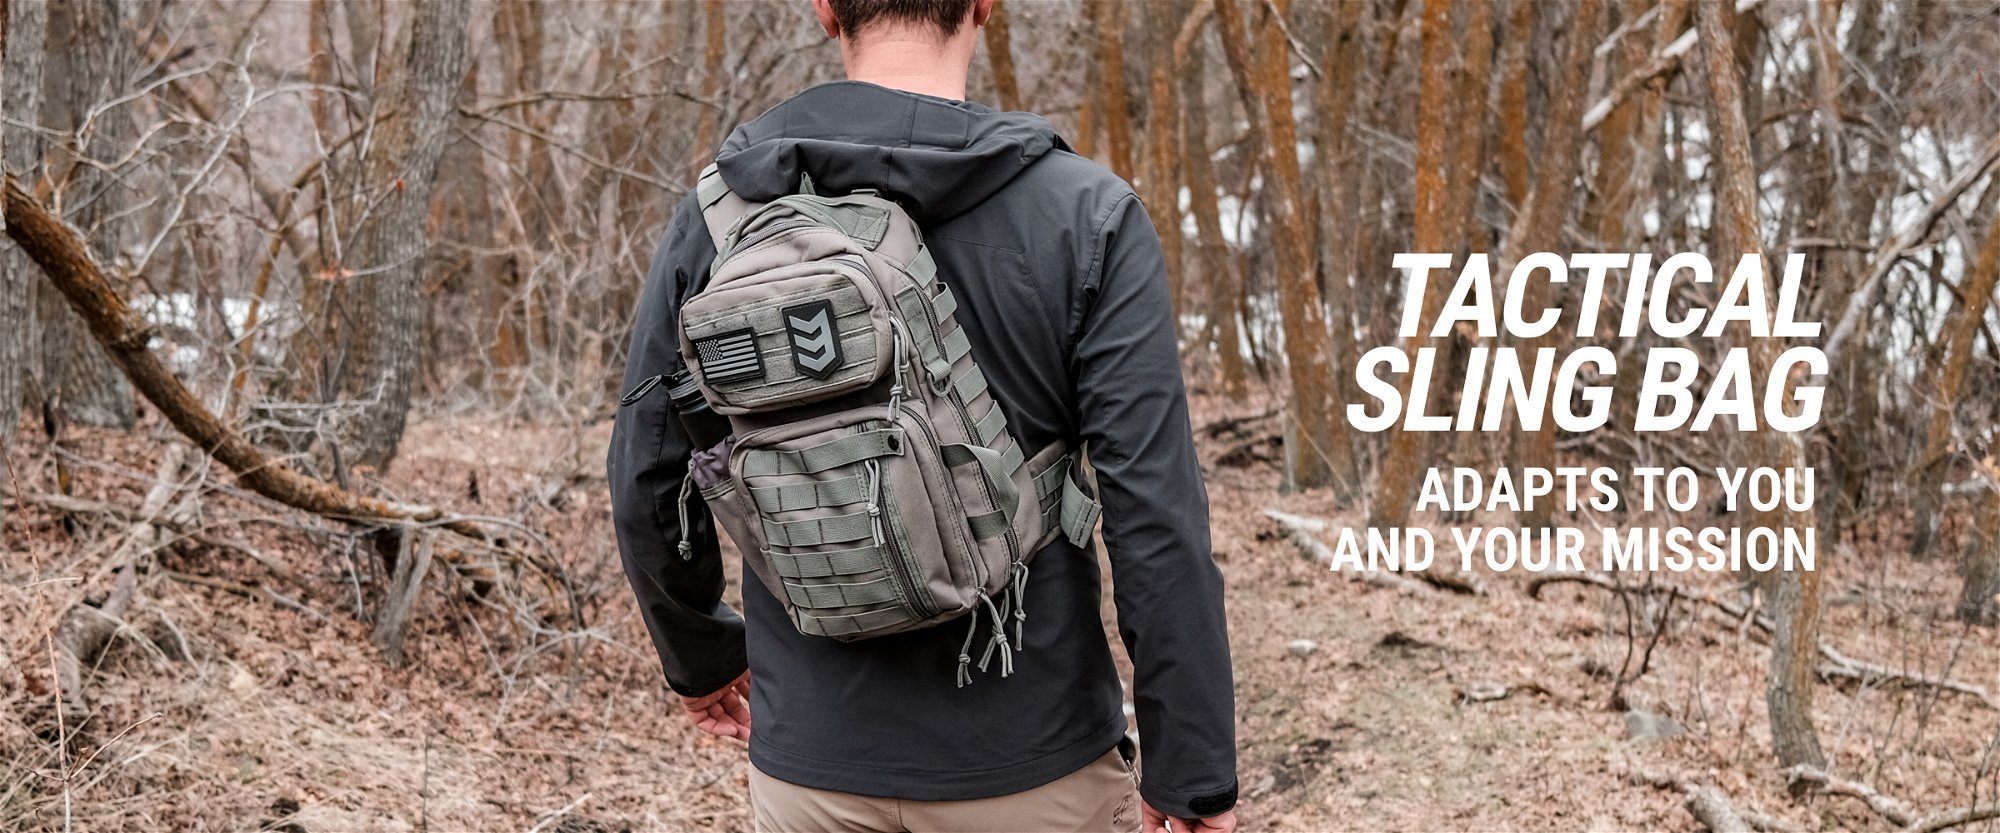 3v gear outlaw tactical edc sling pack